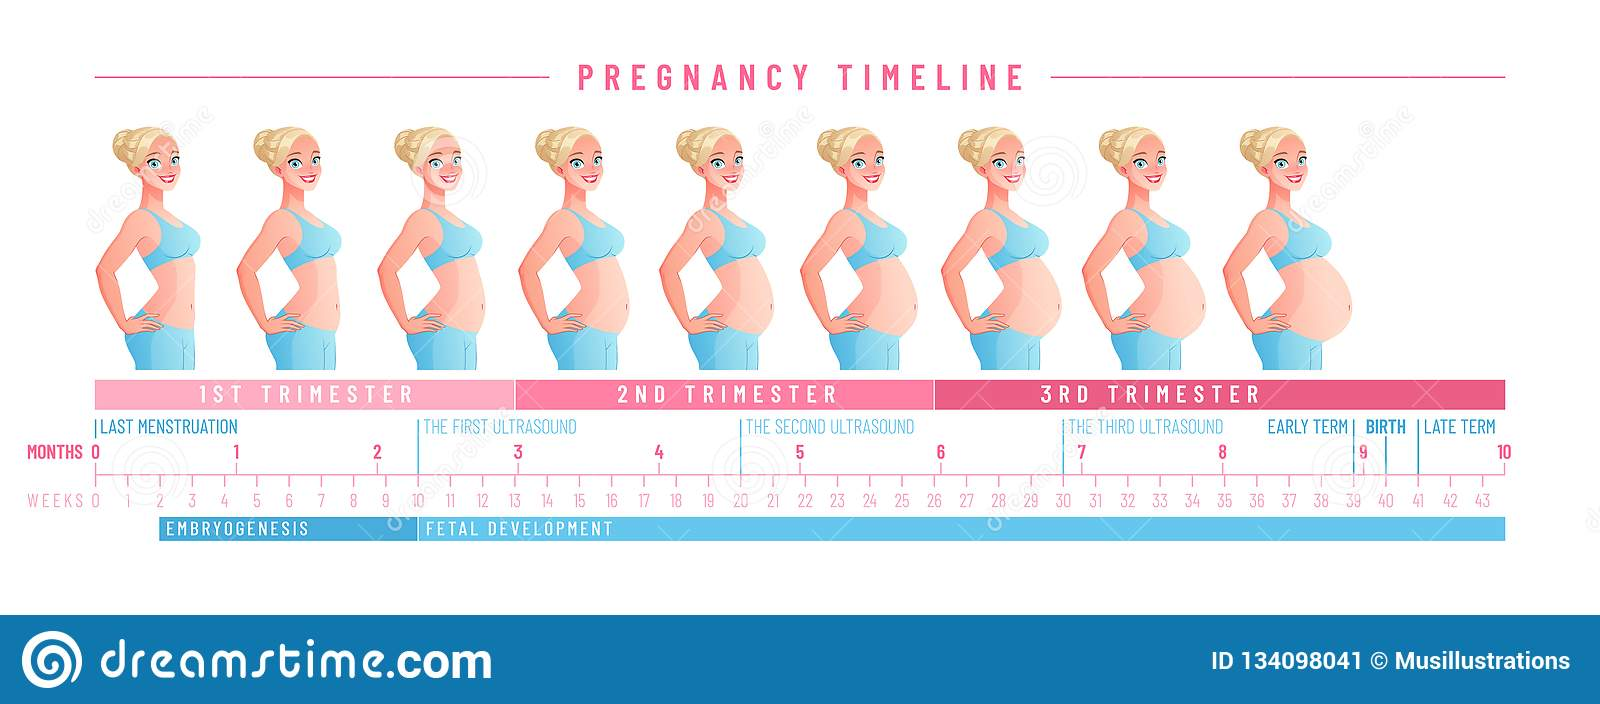 hight resolution of pregnancy timeline by weeks isolated vector illustration